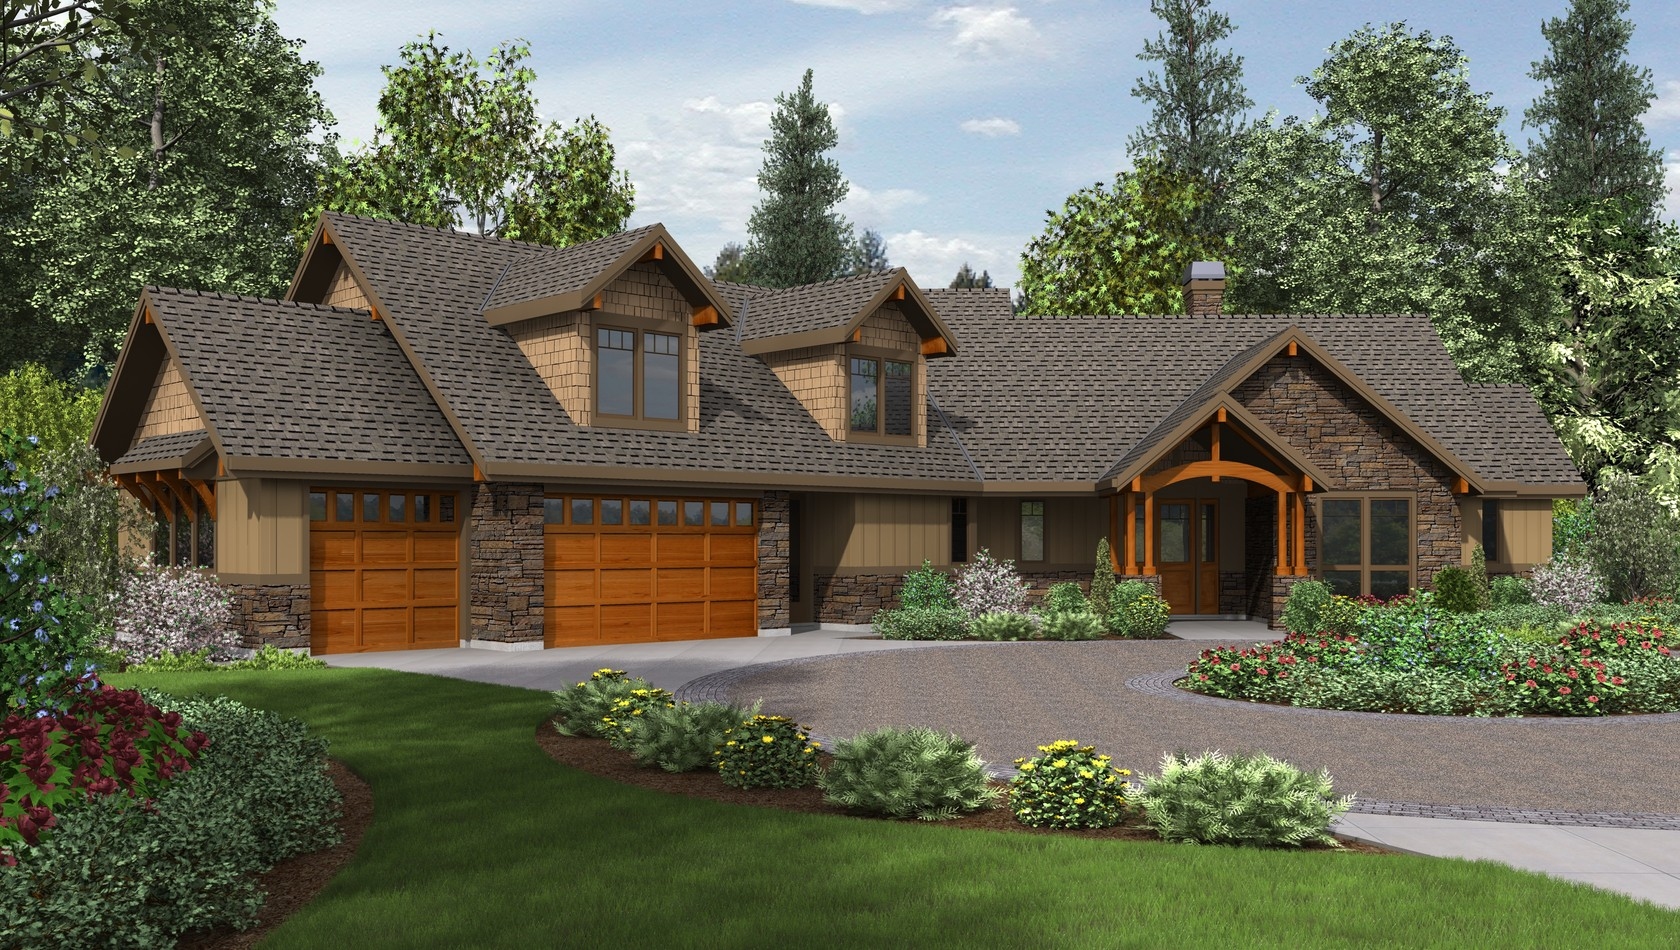 Main image for house plan 22190: The Silverton